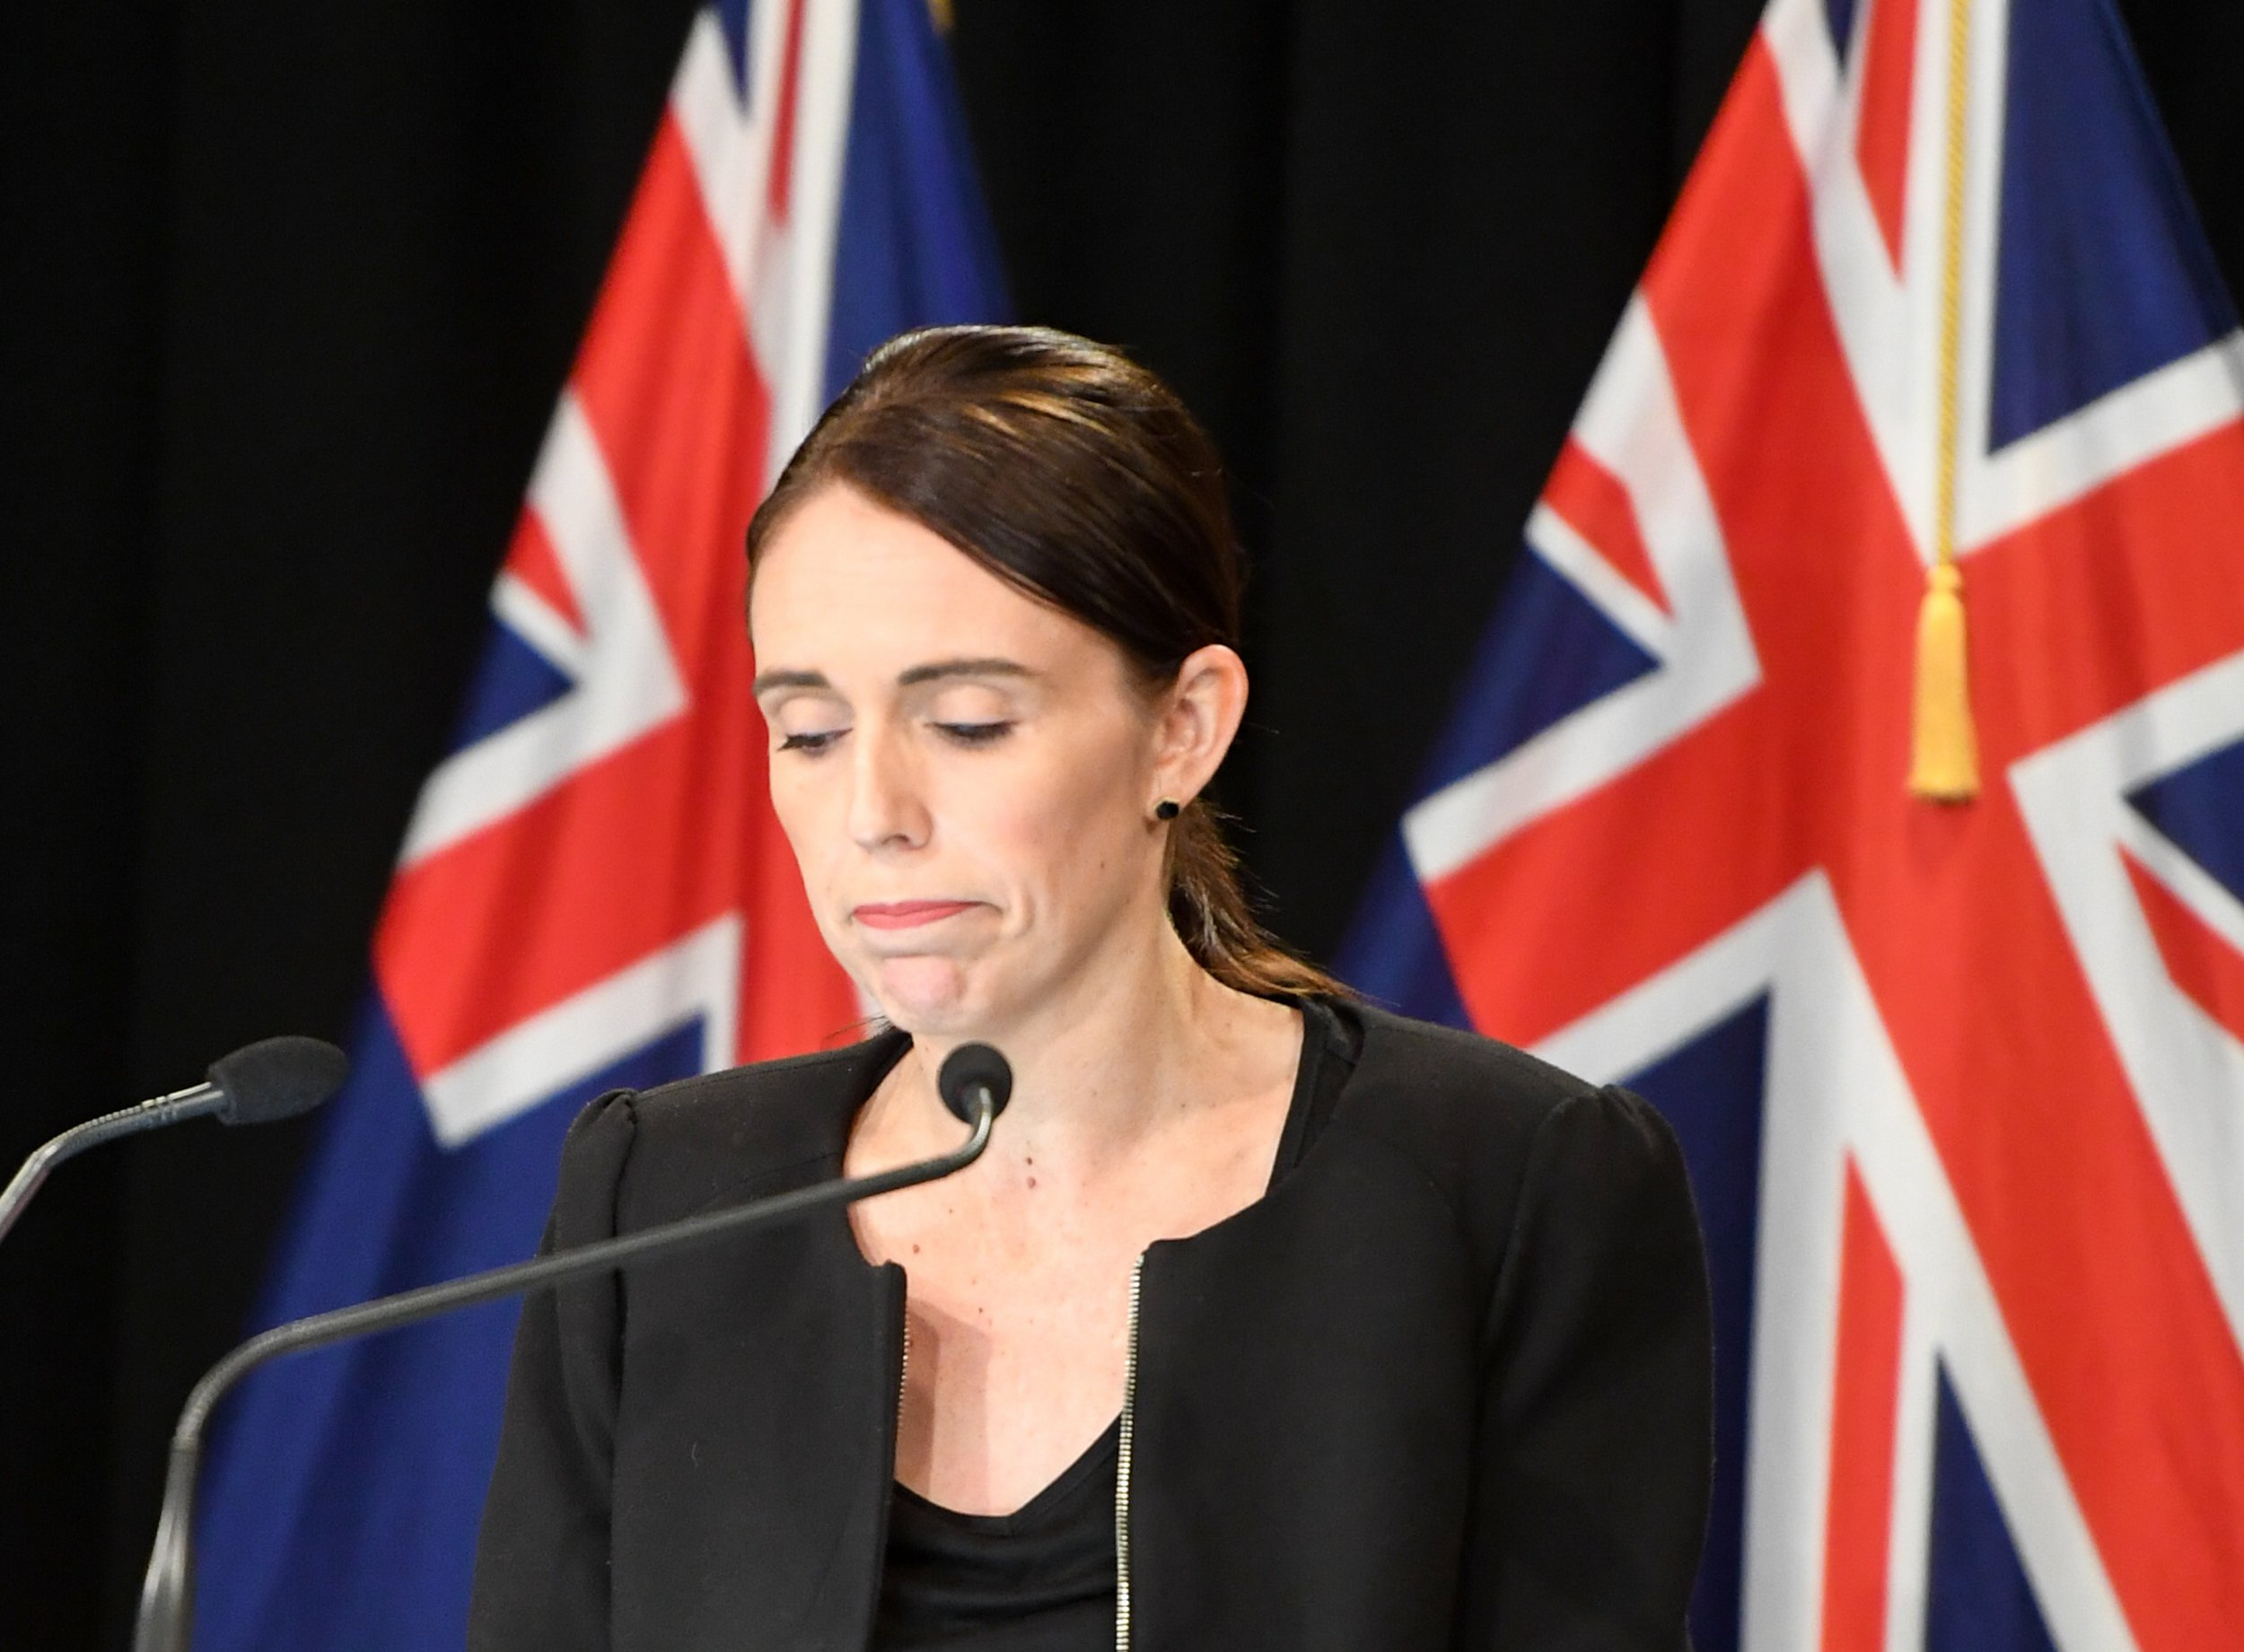 (190316) -- WELLINGTON, March 16, 2019 (Xinhua) -- New Zealand Prime Minister Jacinda Ardern reacts during a briefing in Wellington, capital of New Zealand, on March 16, 2019. Jacinda Ardern reiterated to the public on Saturday morning that the country's gun law will be changed. Gunmen opened fire in two separate mosques in Christchurch on Friday, killing 49 people and wounding 48 others. (Xinhua/Guo Lei) PHOTOGRAPH BY Xinhua / Barcroft Images